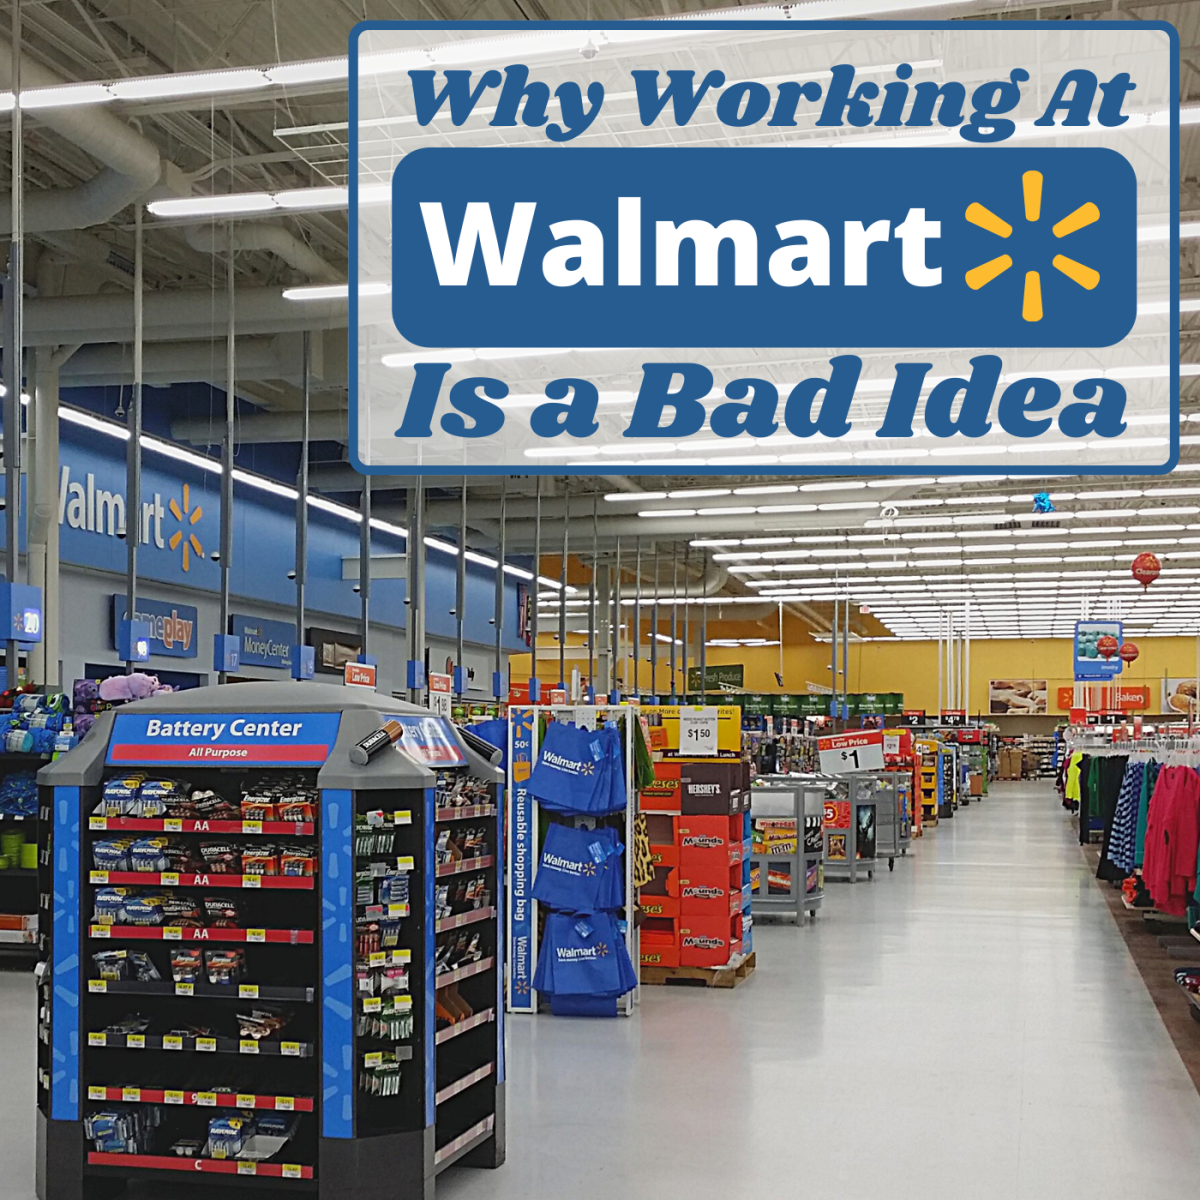 4 Reasons Why You Should Never Work For Walmart